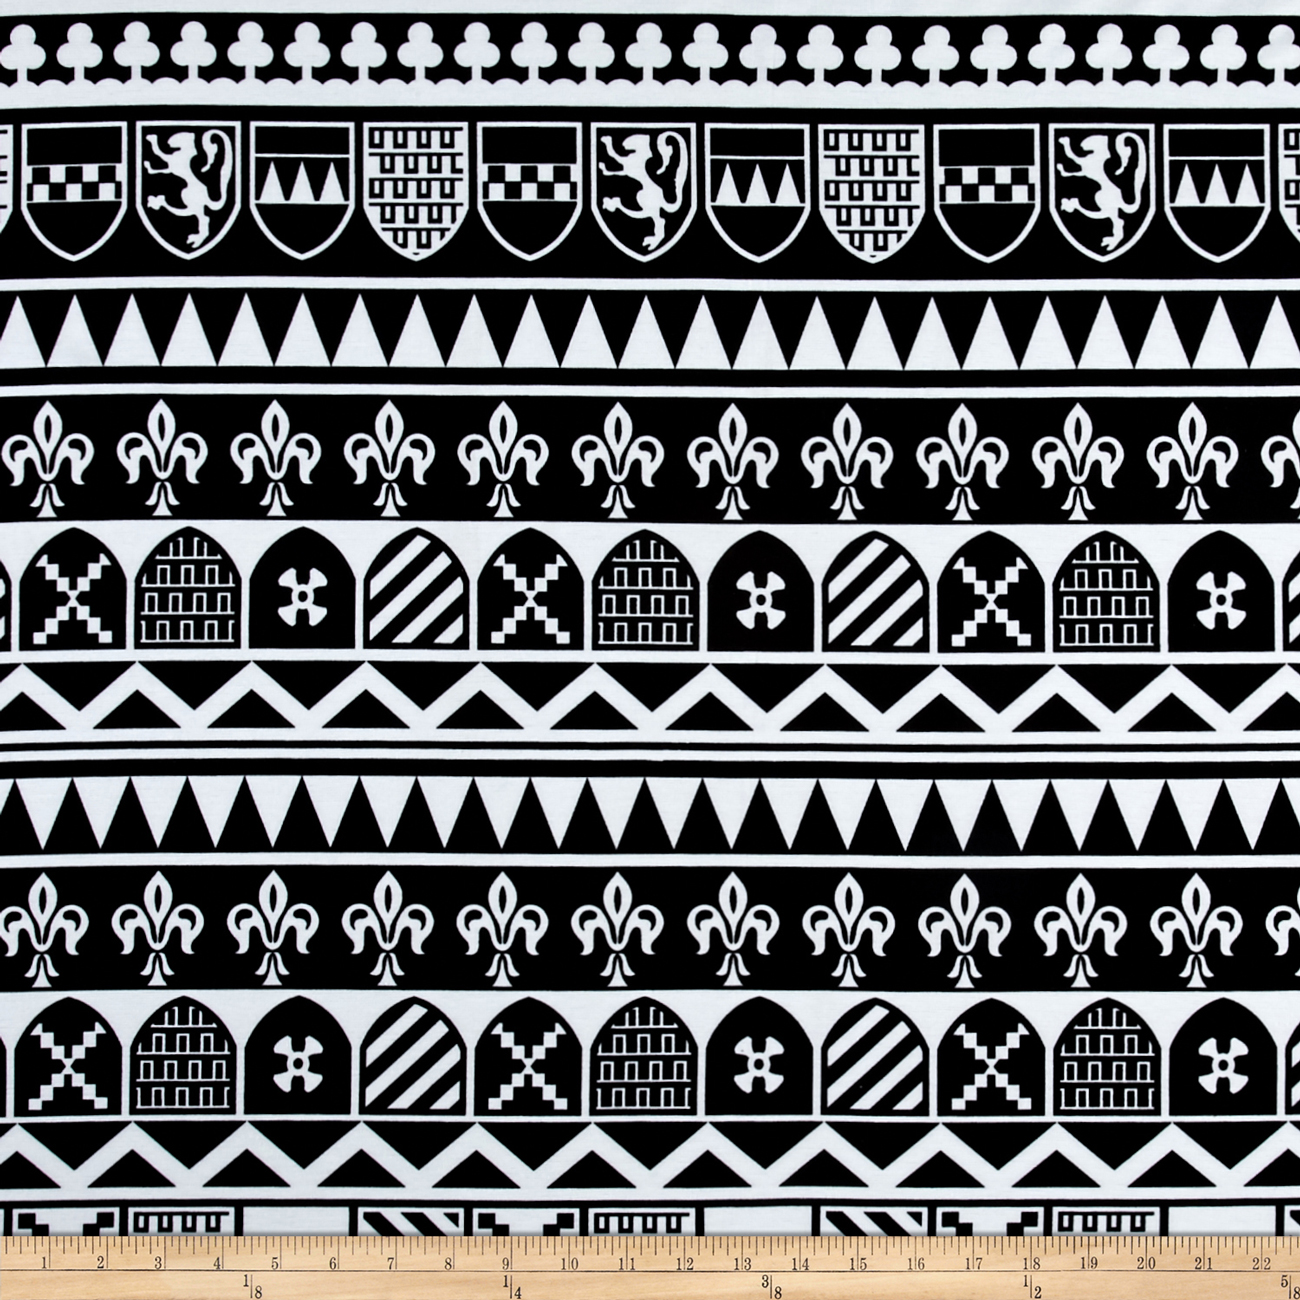 Ponte De Roma Royal Knight Black/white Fabric